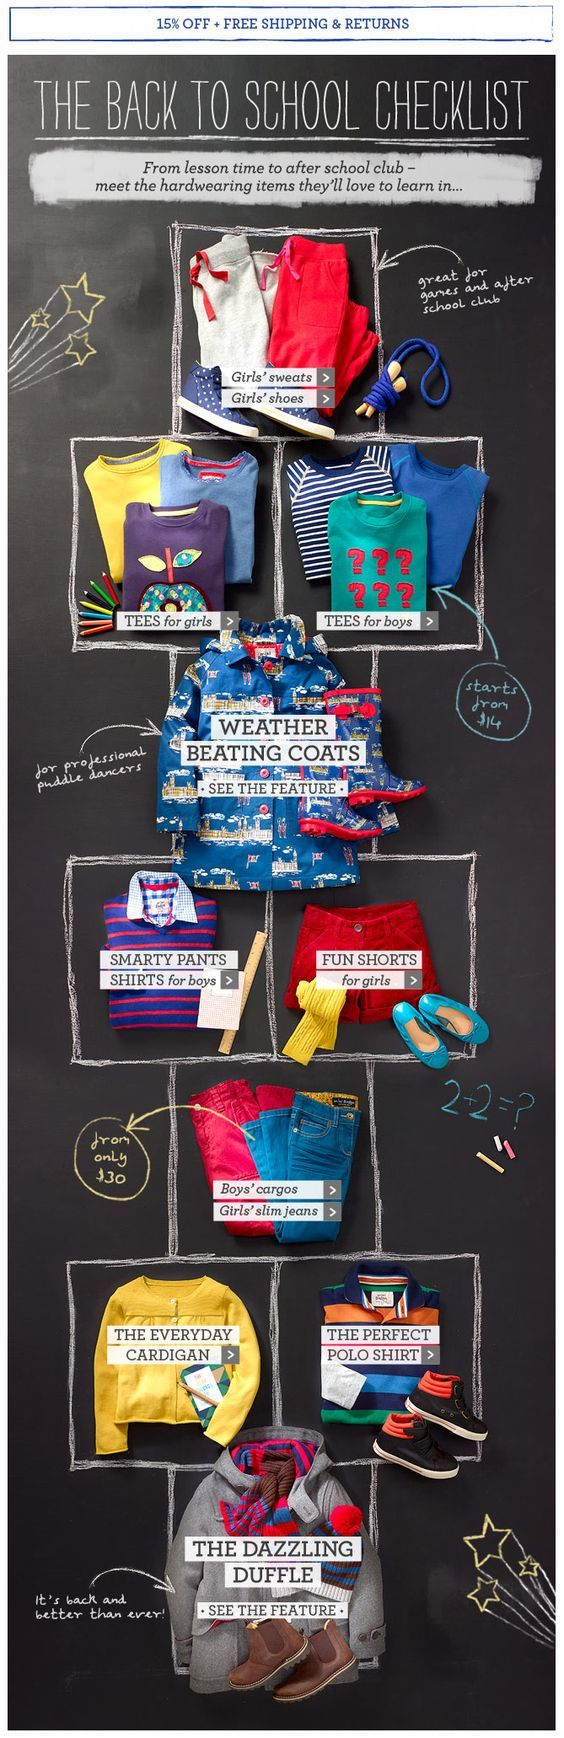 Clever use of background that matches the theme of the email design | Johnnie Boden back to school email ad design 2012